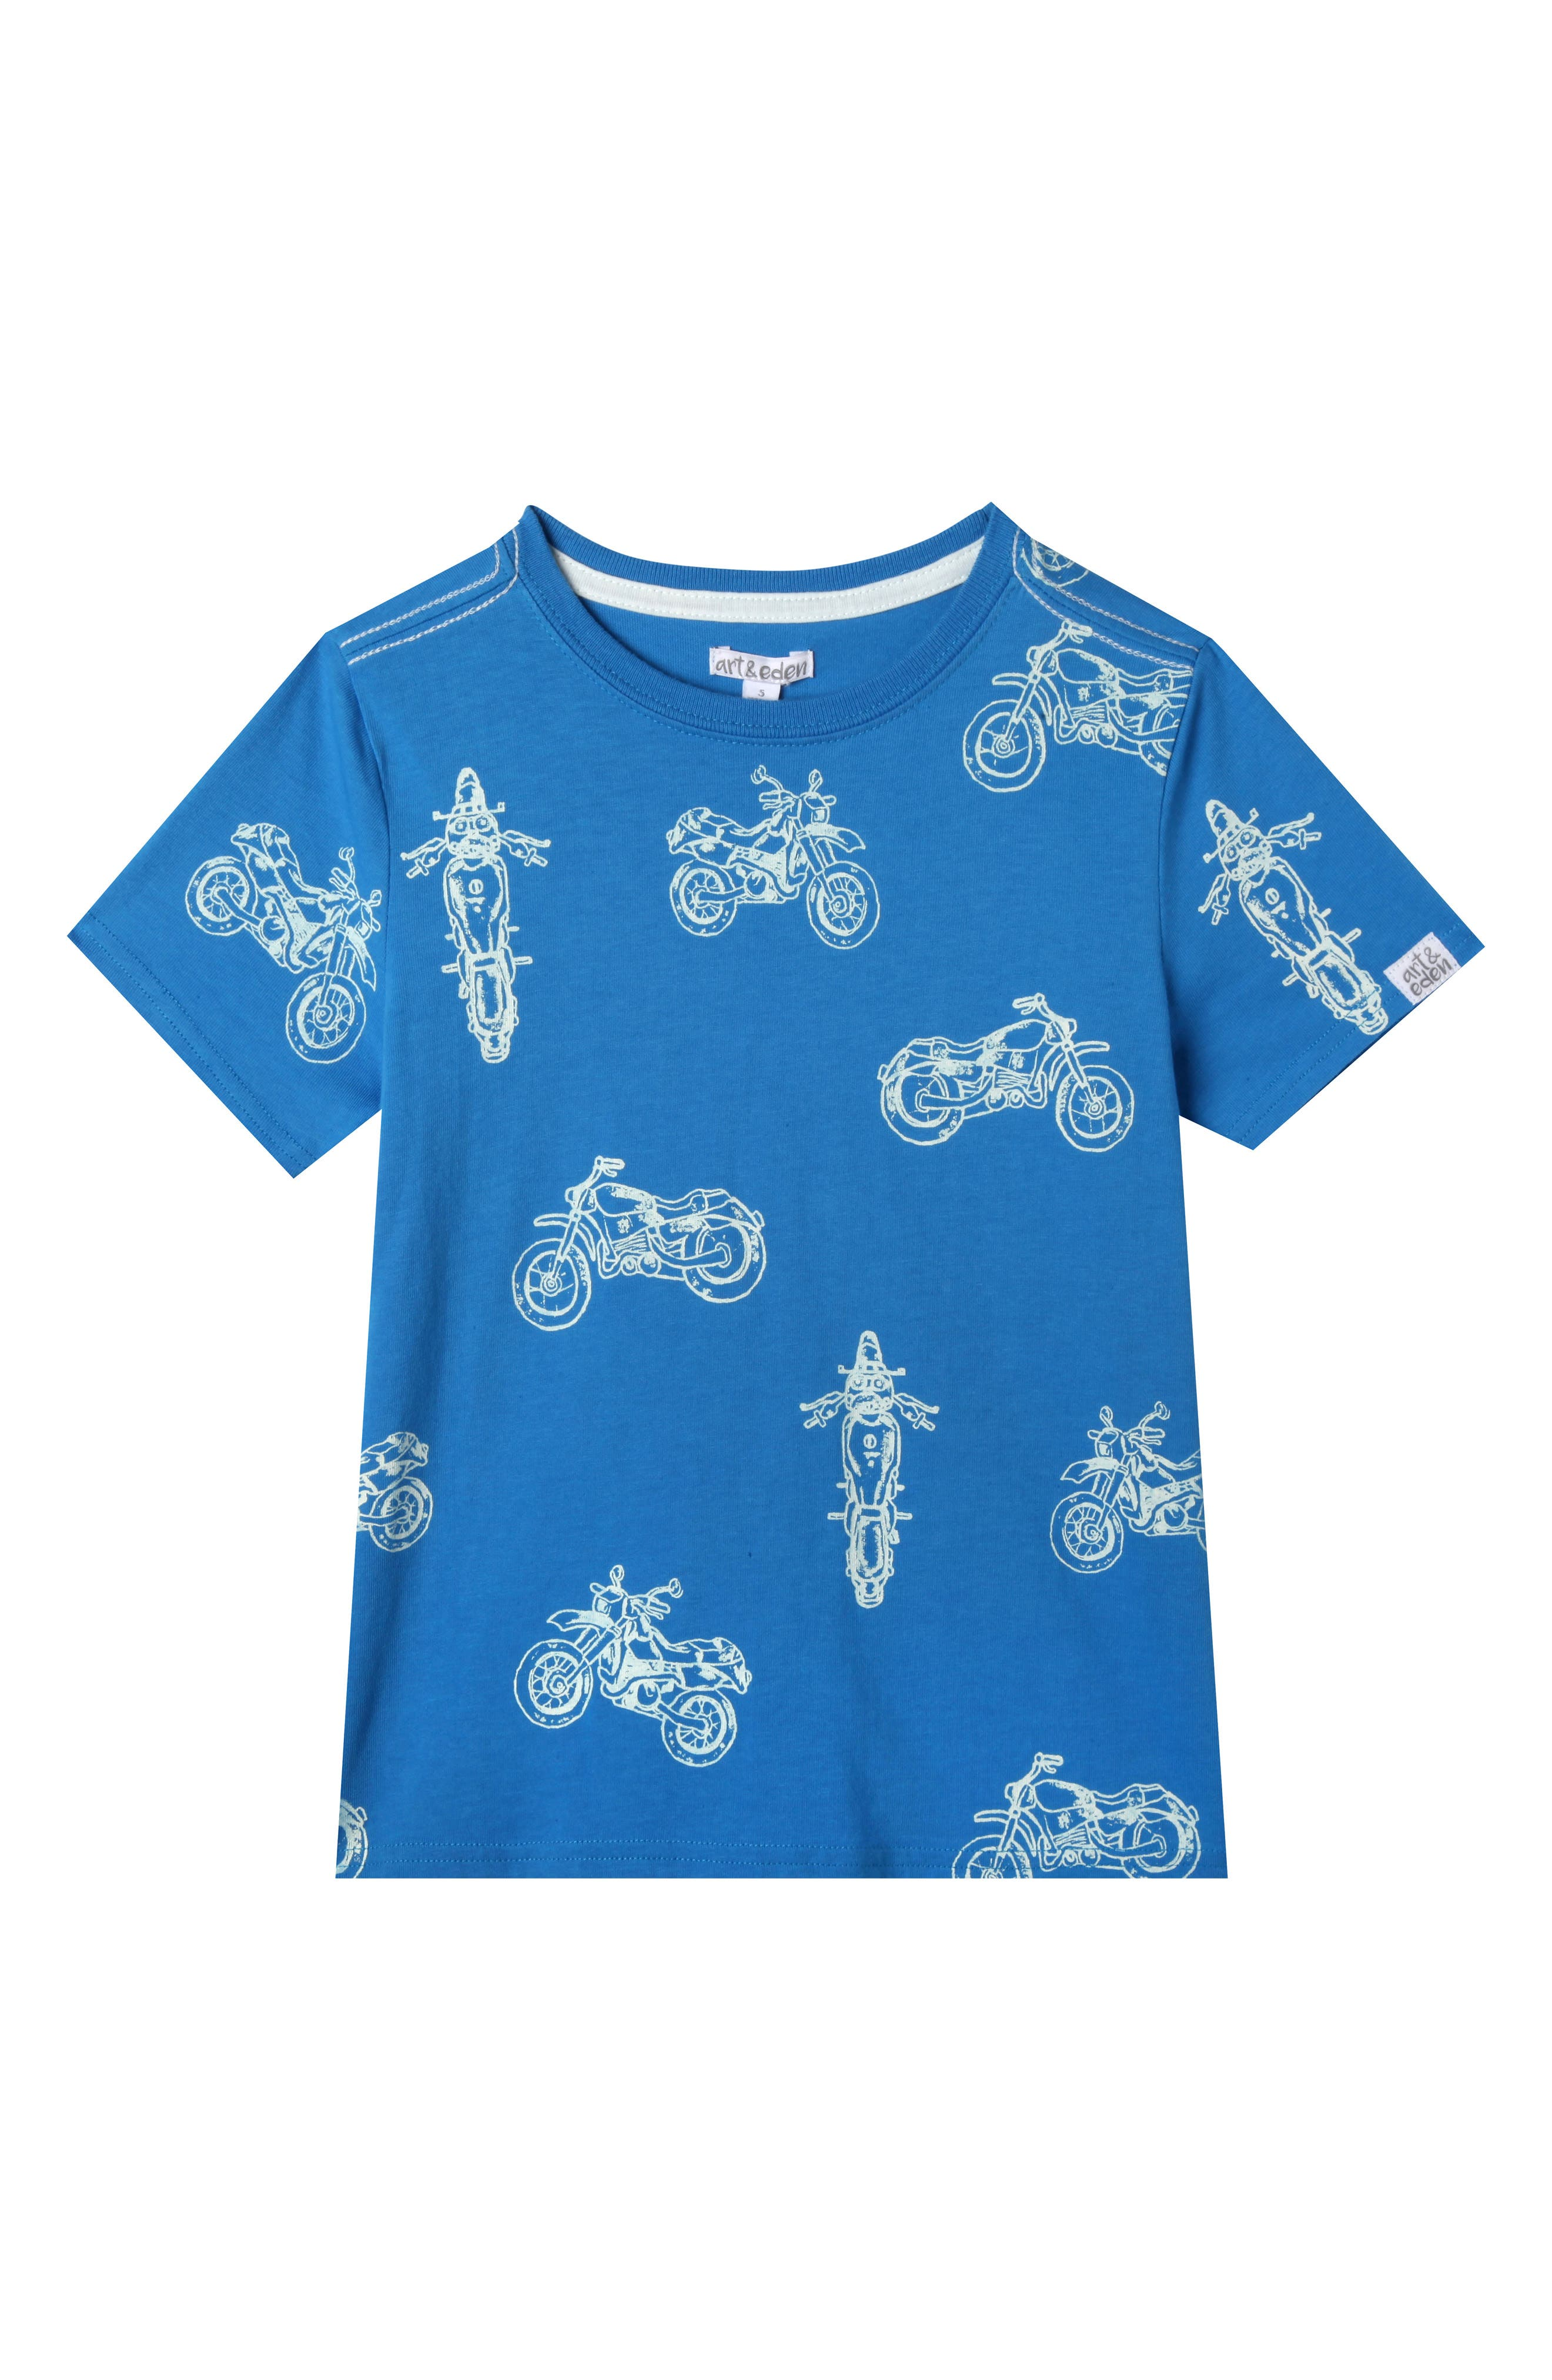 Sebastian Motorcycle Organic Cotton T-Shirt,                         Main,                         color, French Blue